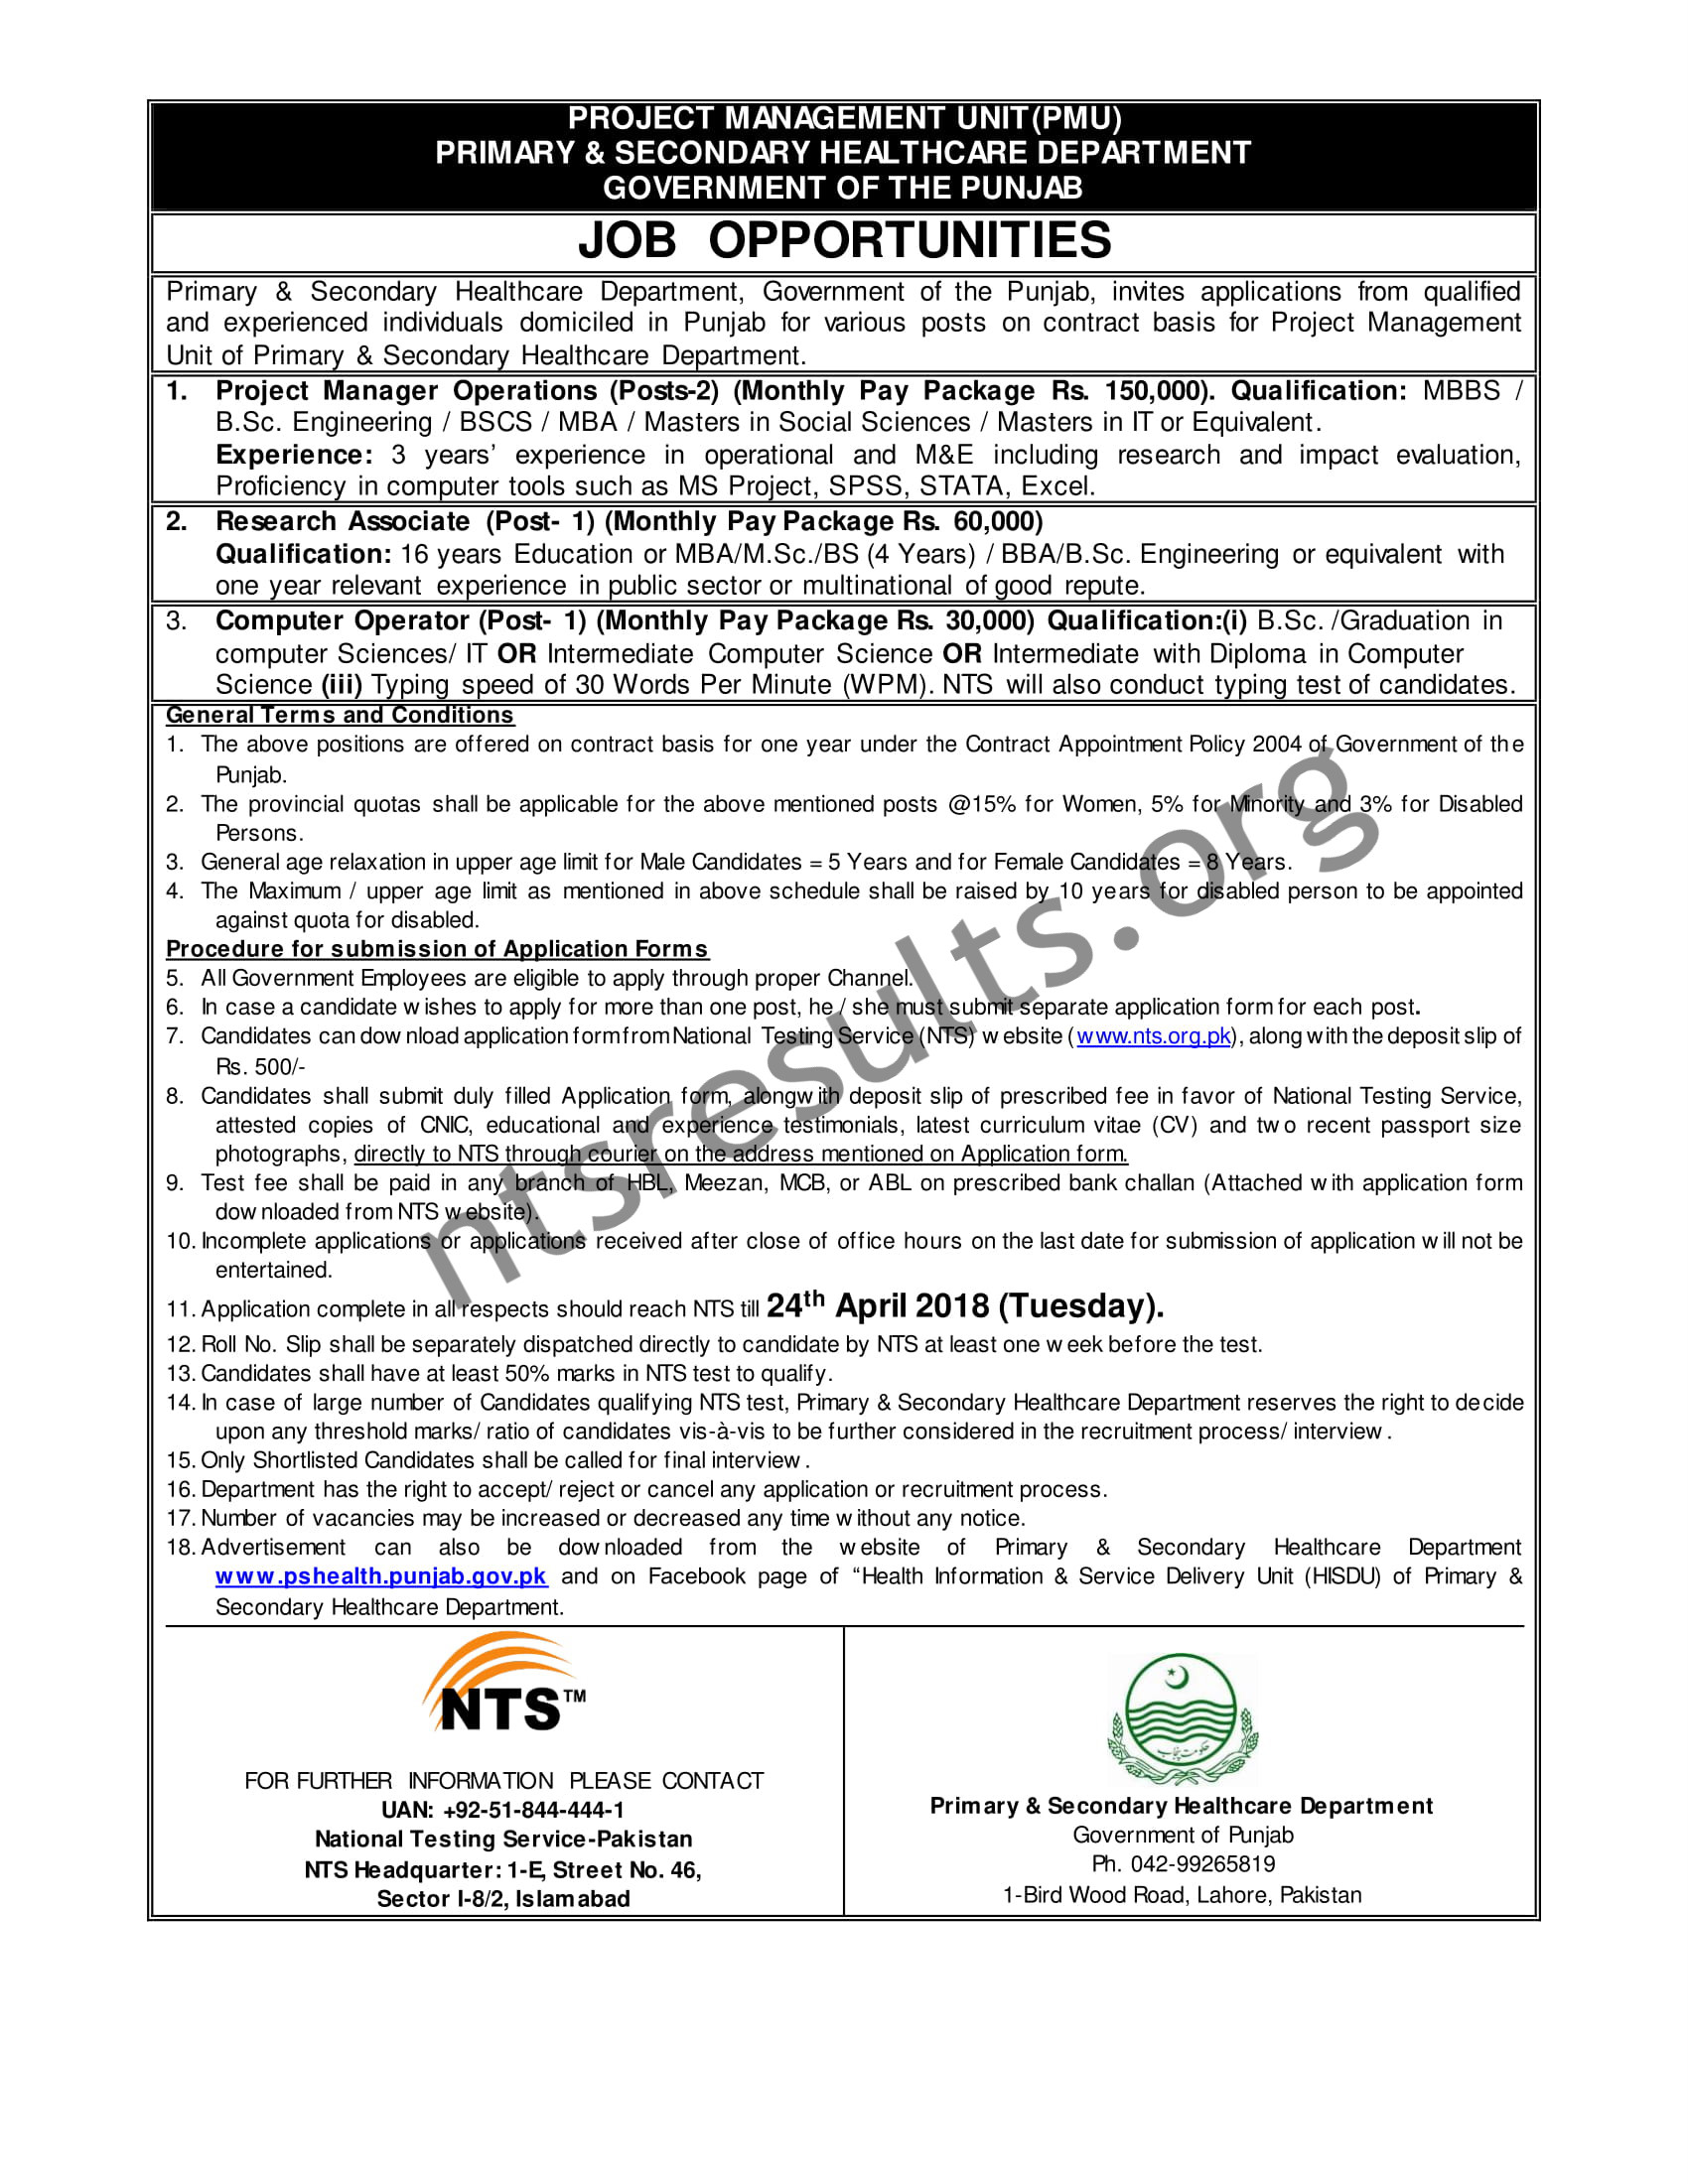 Healthcare Department Project Management Unit PMU Jobs Via NTS